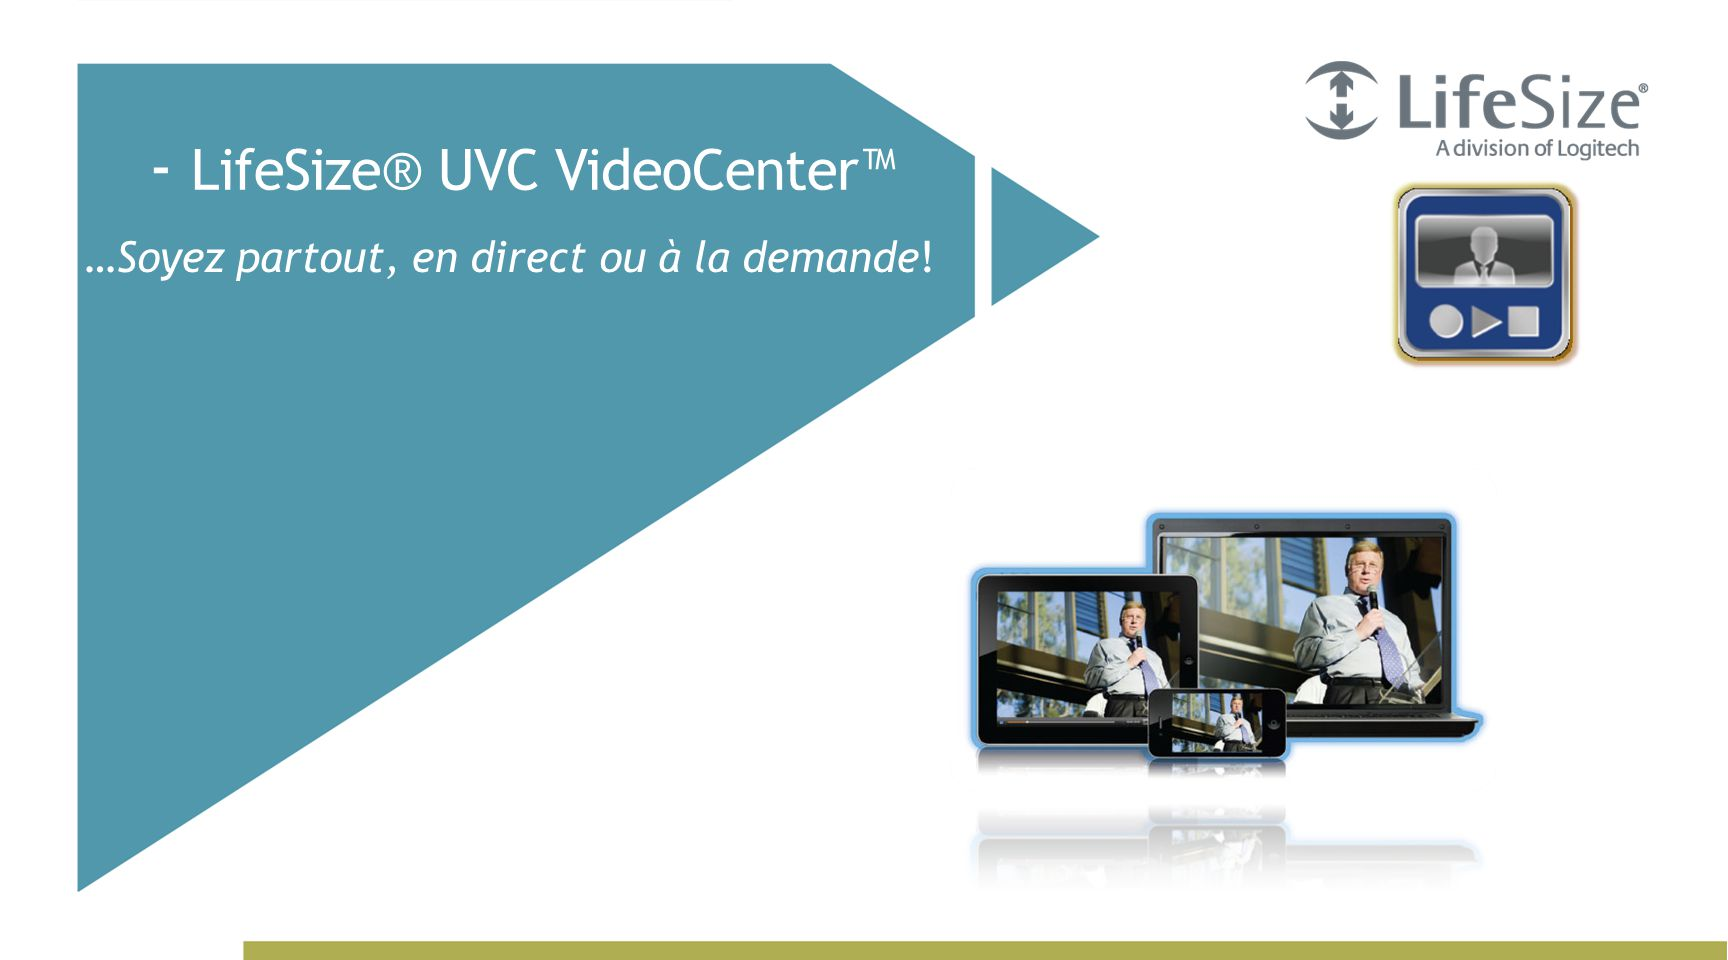 - LifeSize® UVC VideoCenter™